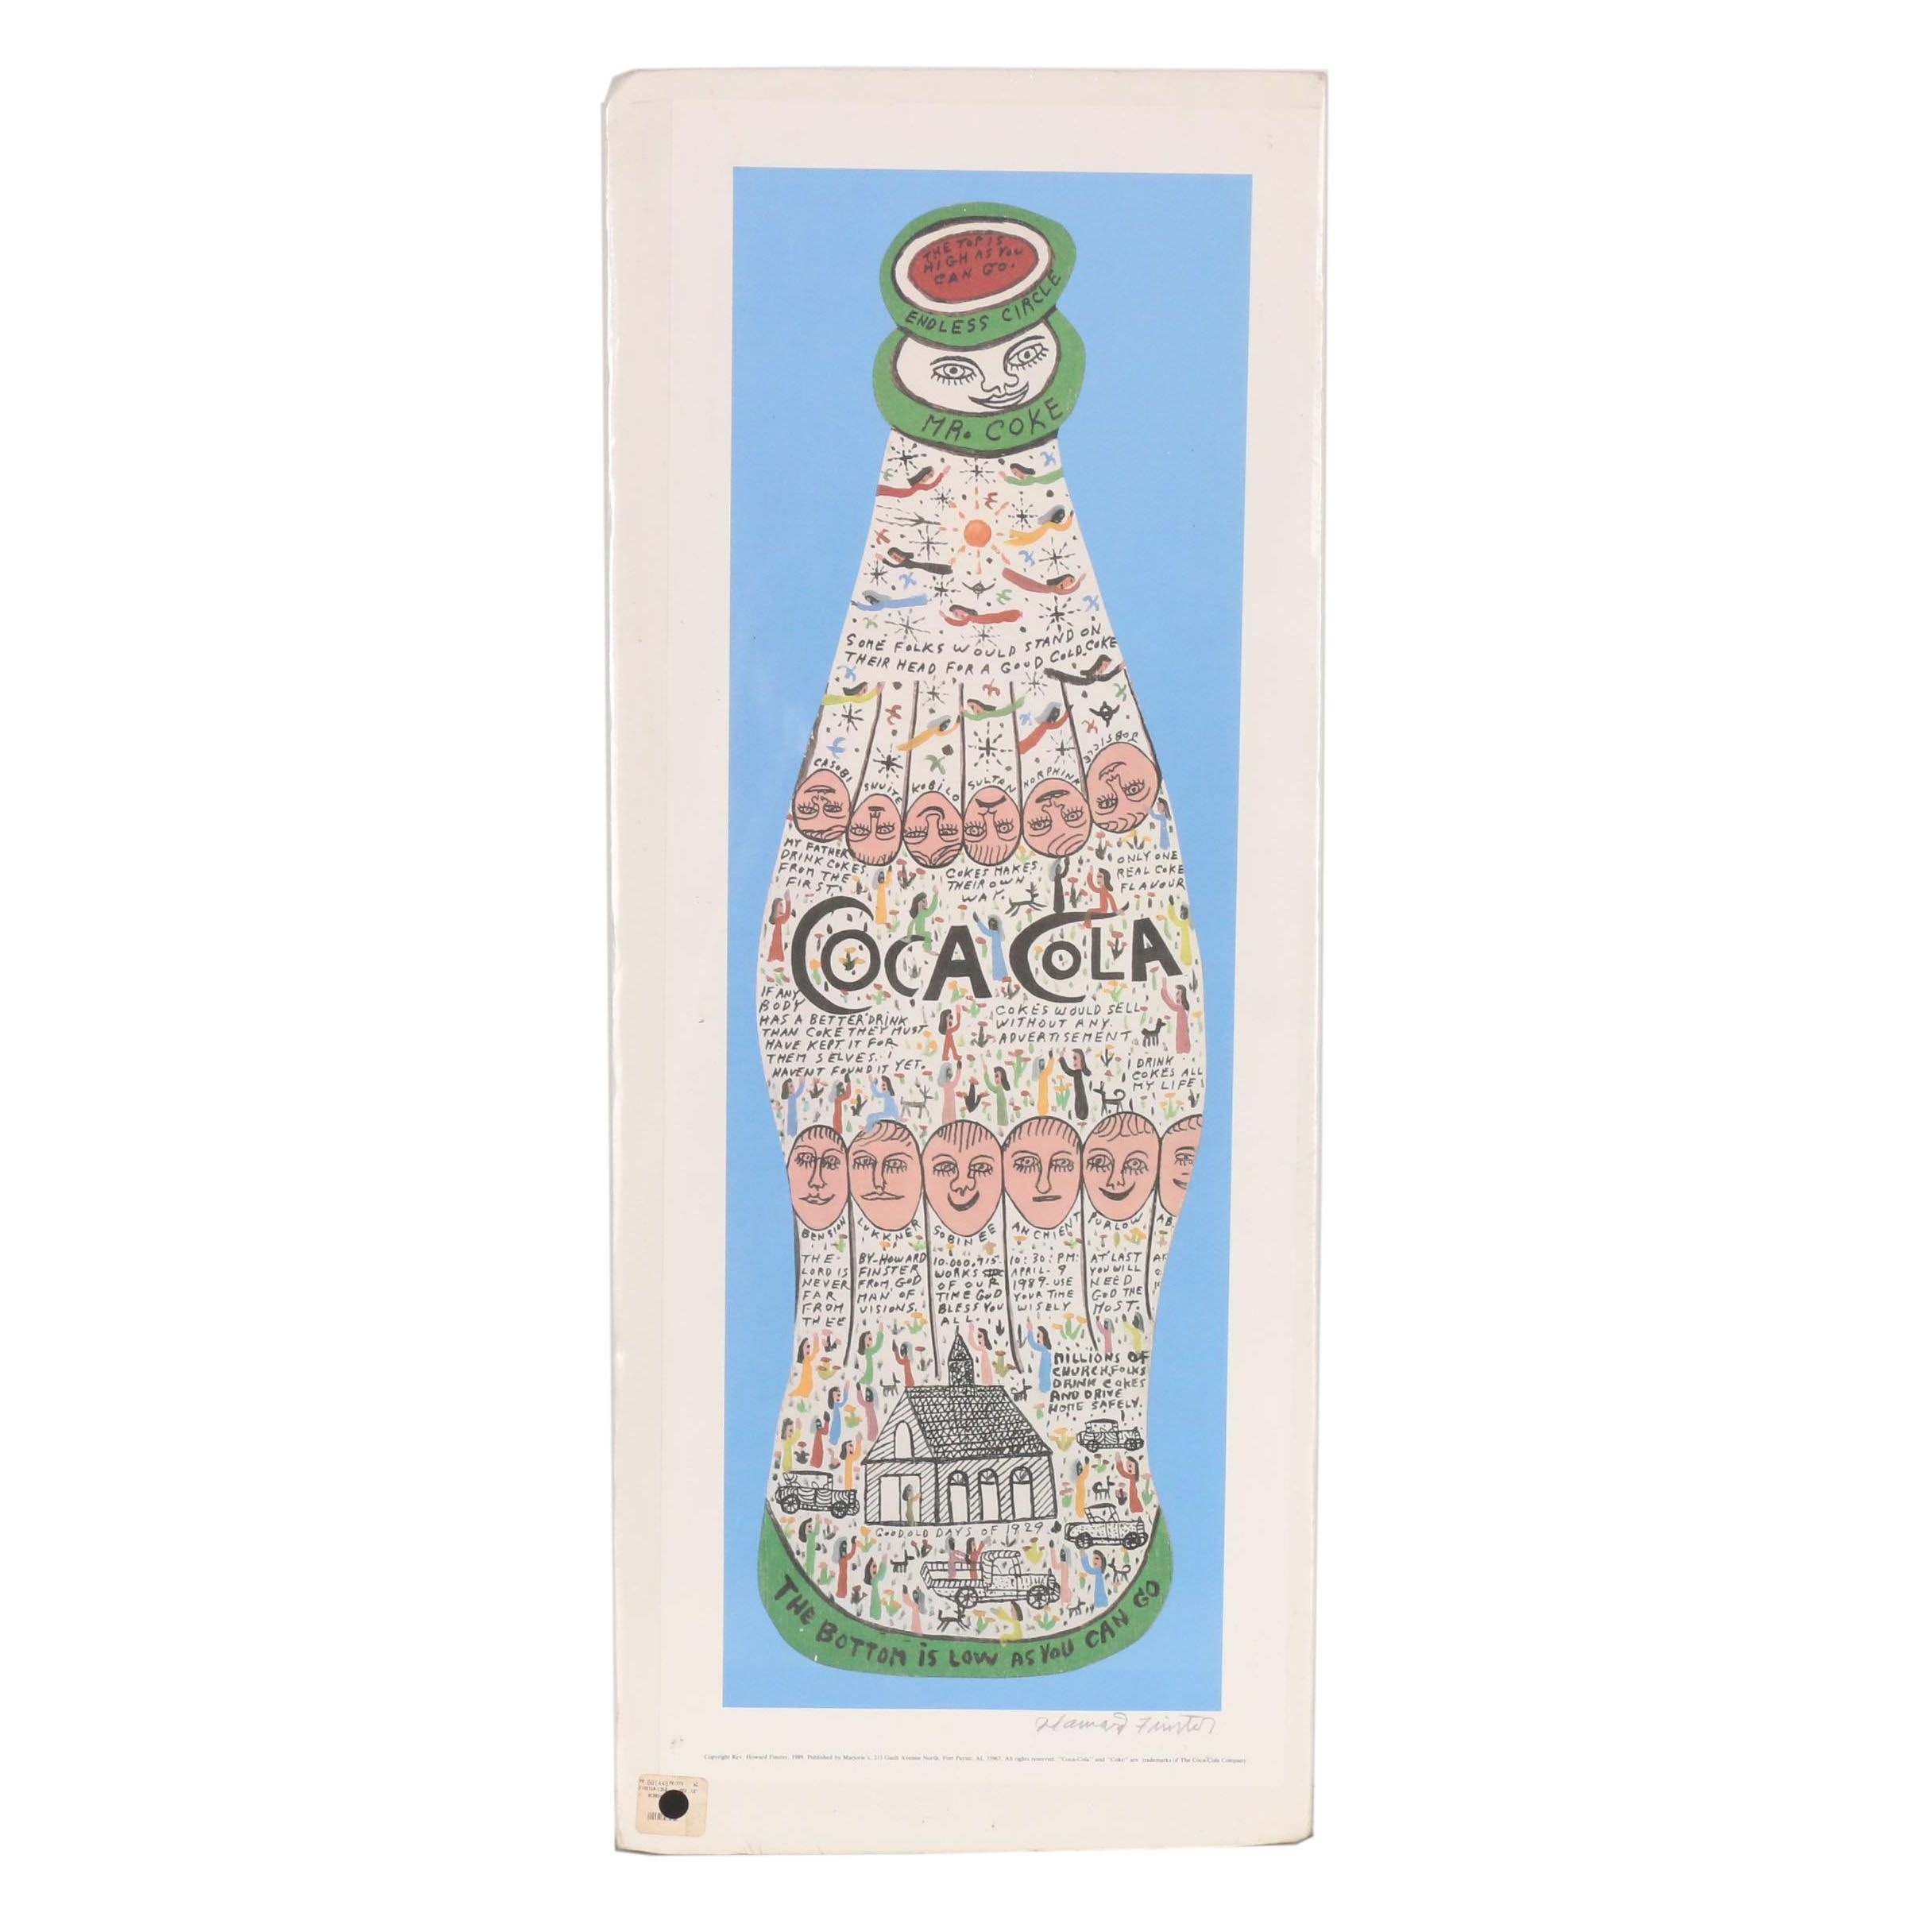 Howard Finster Offset Lithograph from Coca-Cola Bottle Series